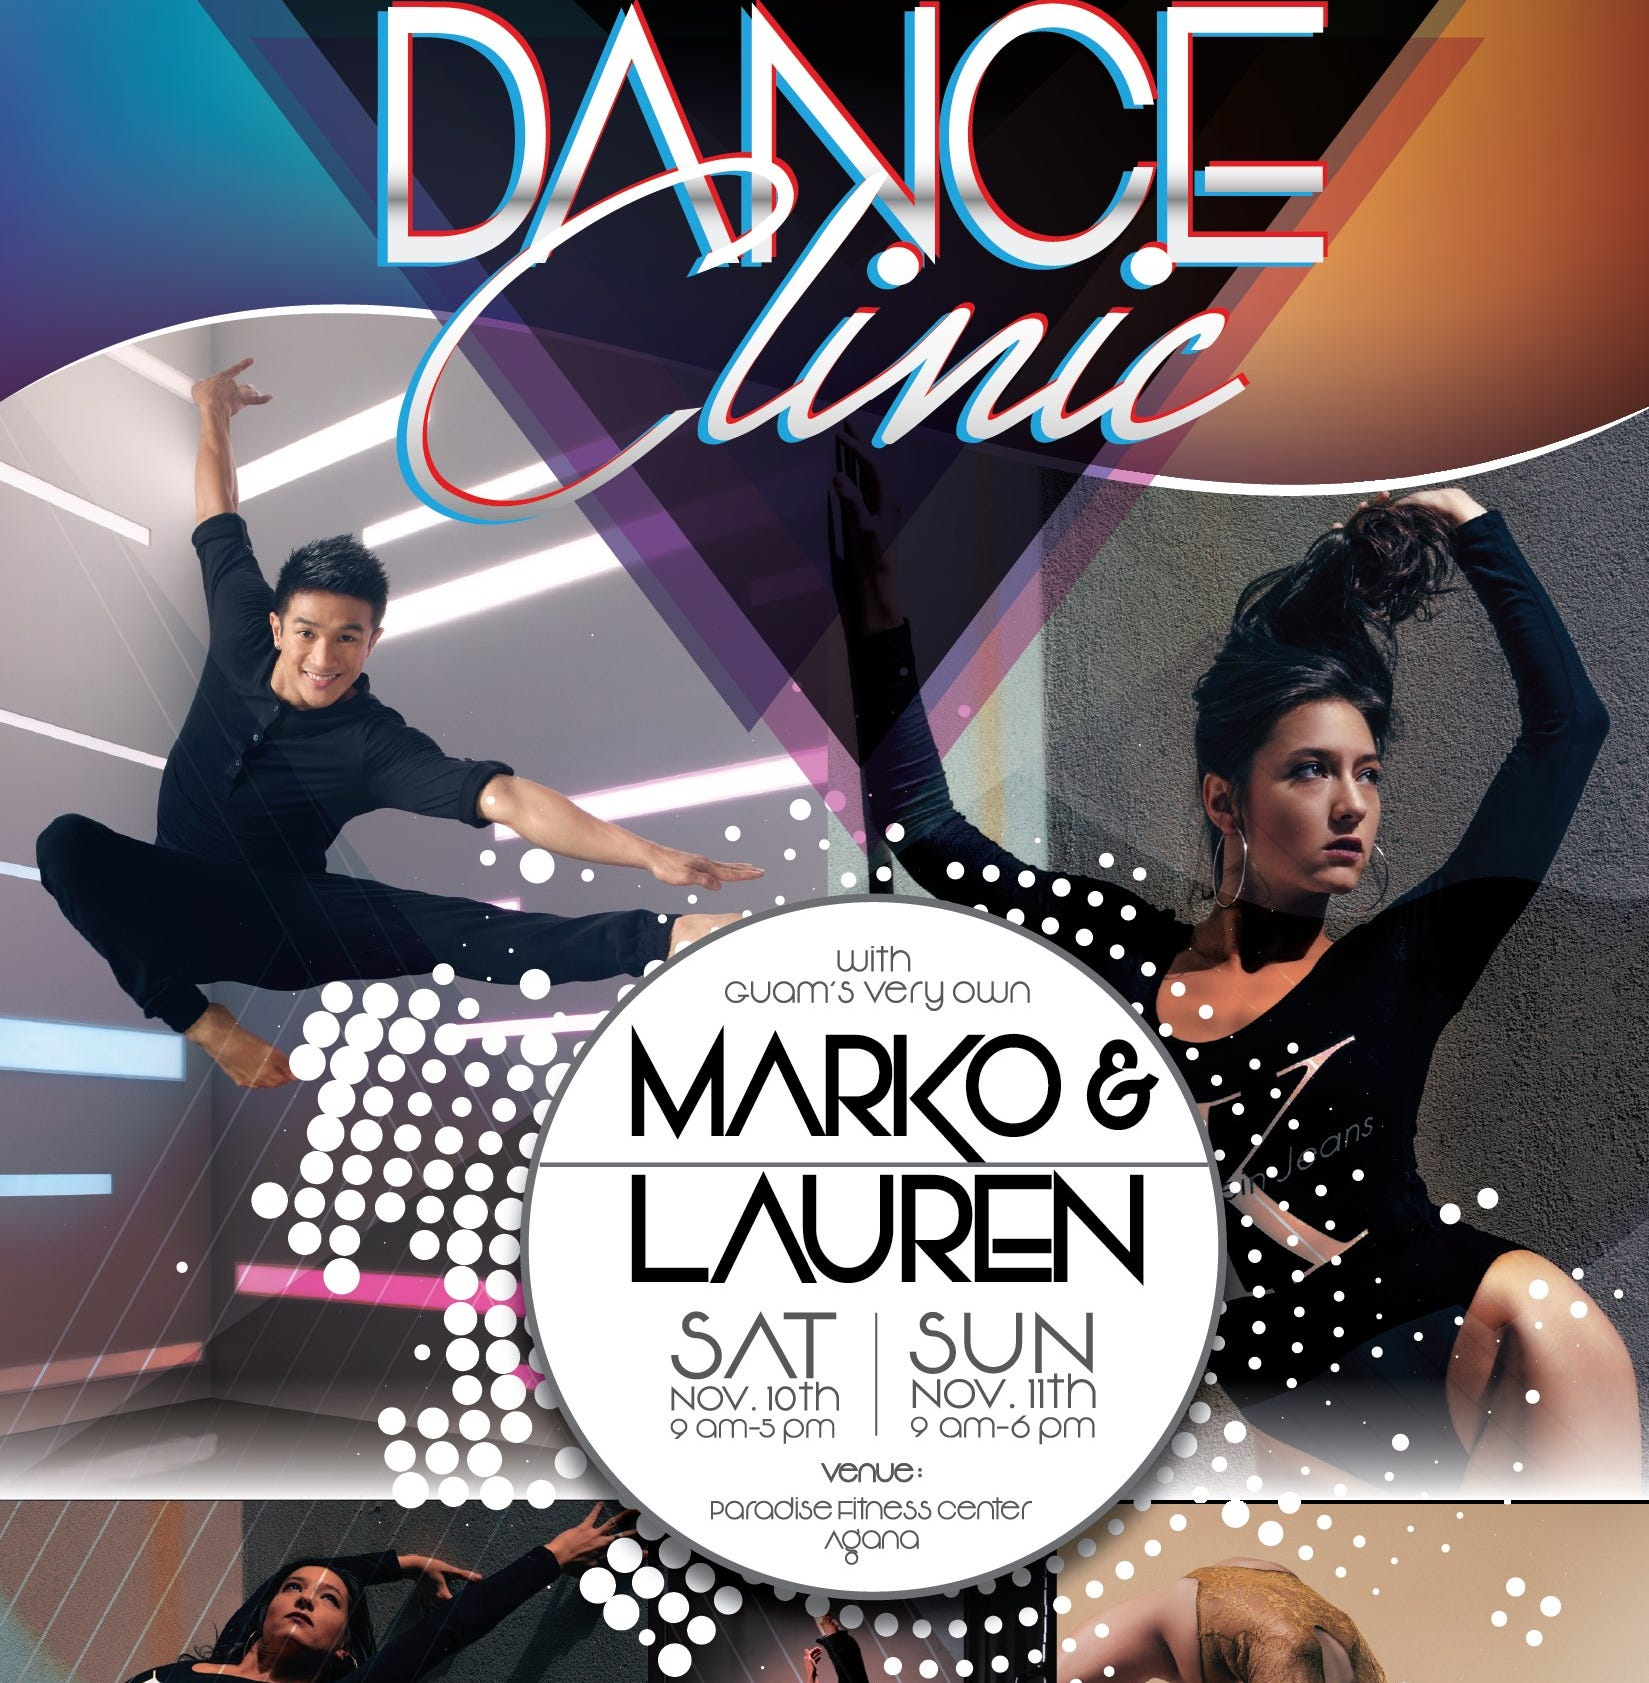 Professional dancers Lauren Santos,Marko Germar to hold 2-day clinic